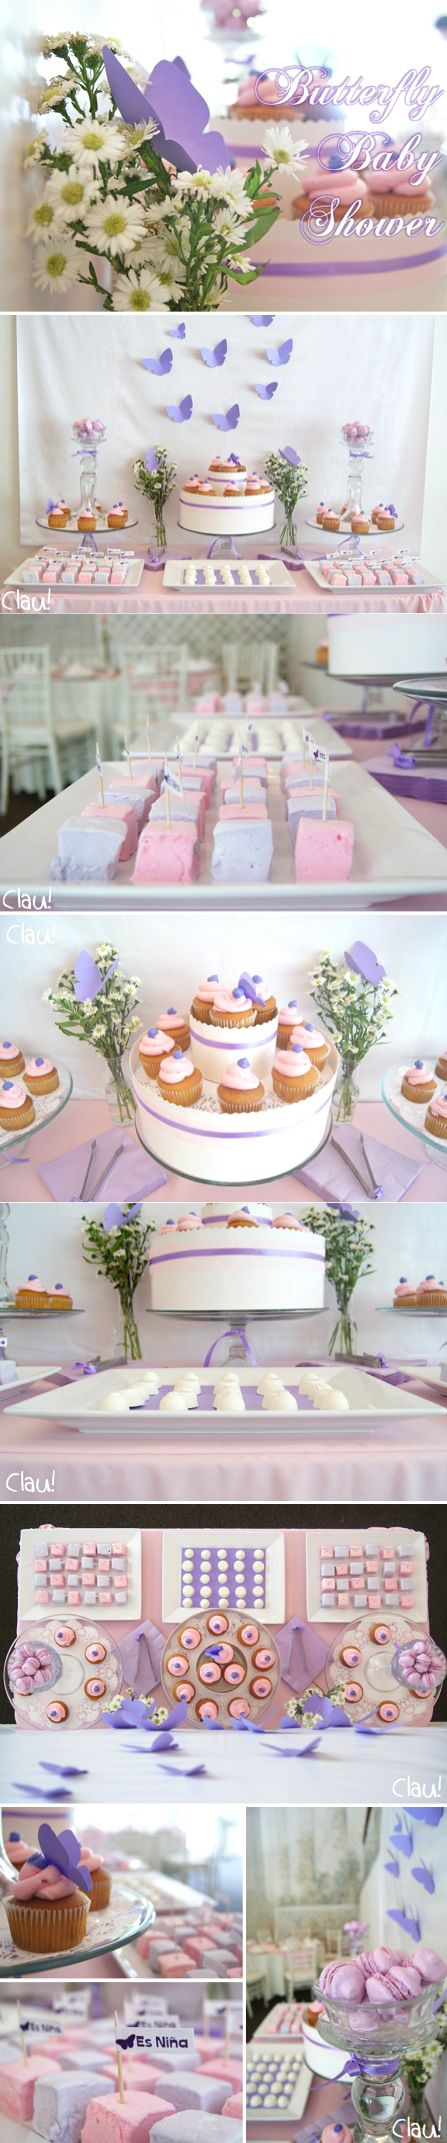 dessert table baby shower mesa de postres para baby shower de